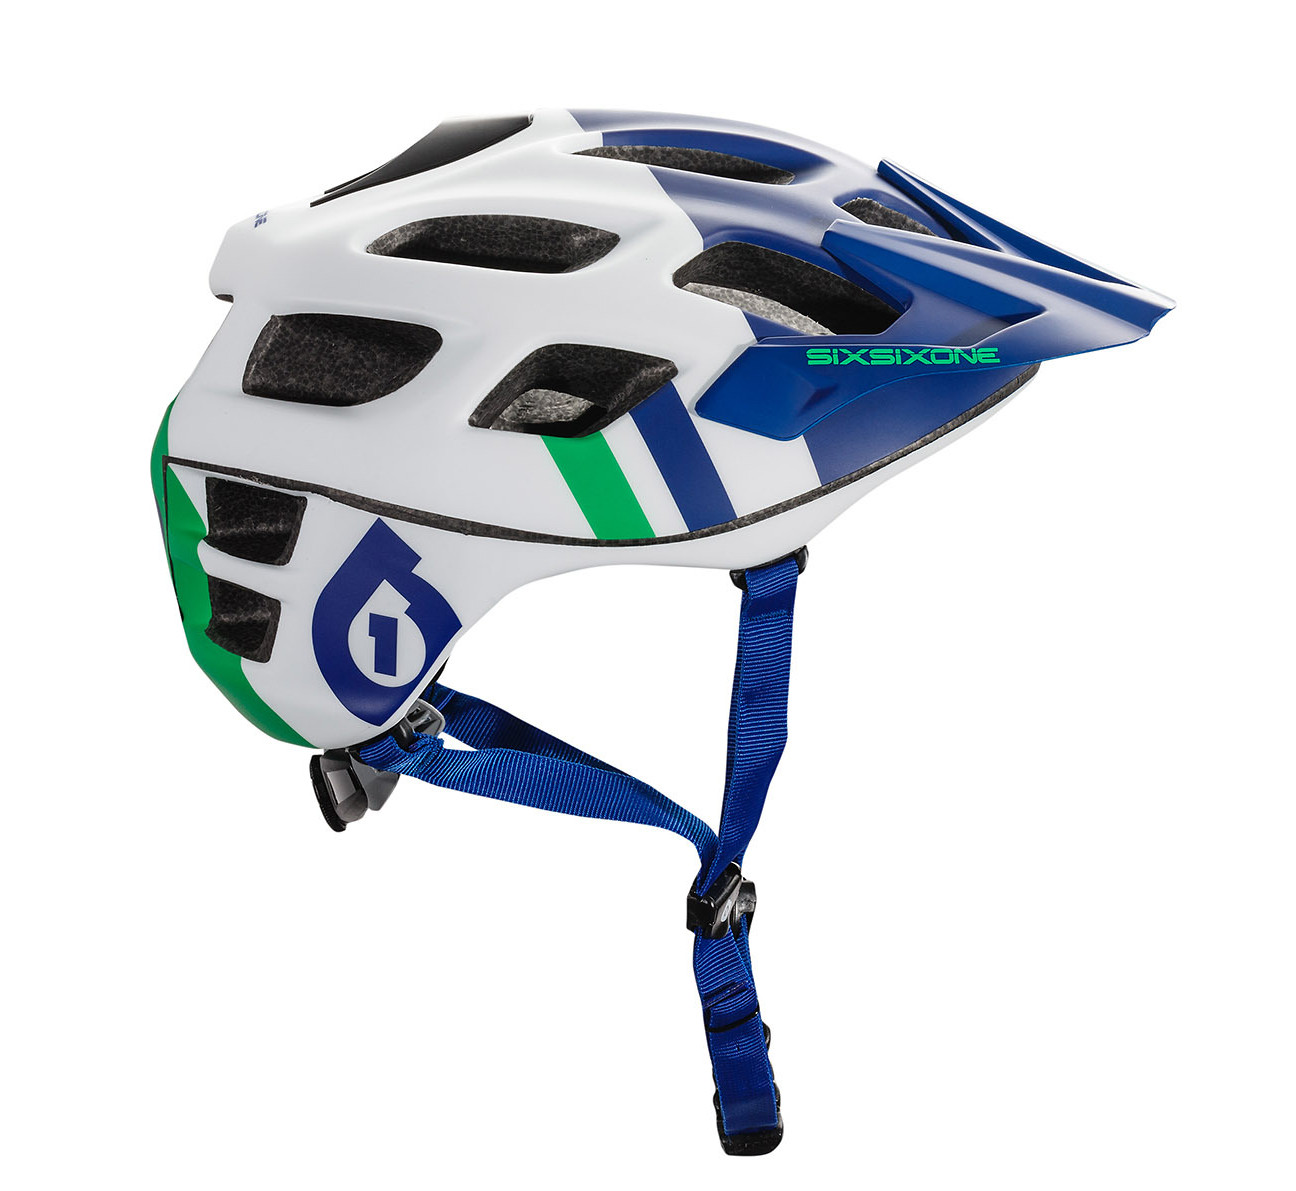 http://p.vitalmtb.com/photos/products/16884/photos/19316/s1600_apparel_1300x1191_0098_661_Recon_HELMET_Blue_Green_Side_Right_7121_48.jpg